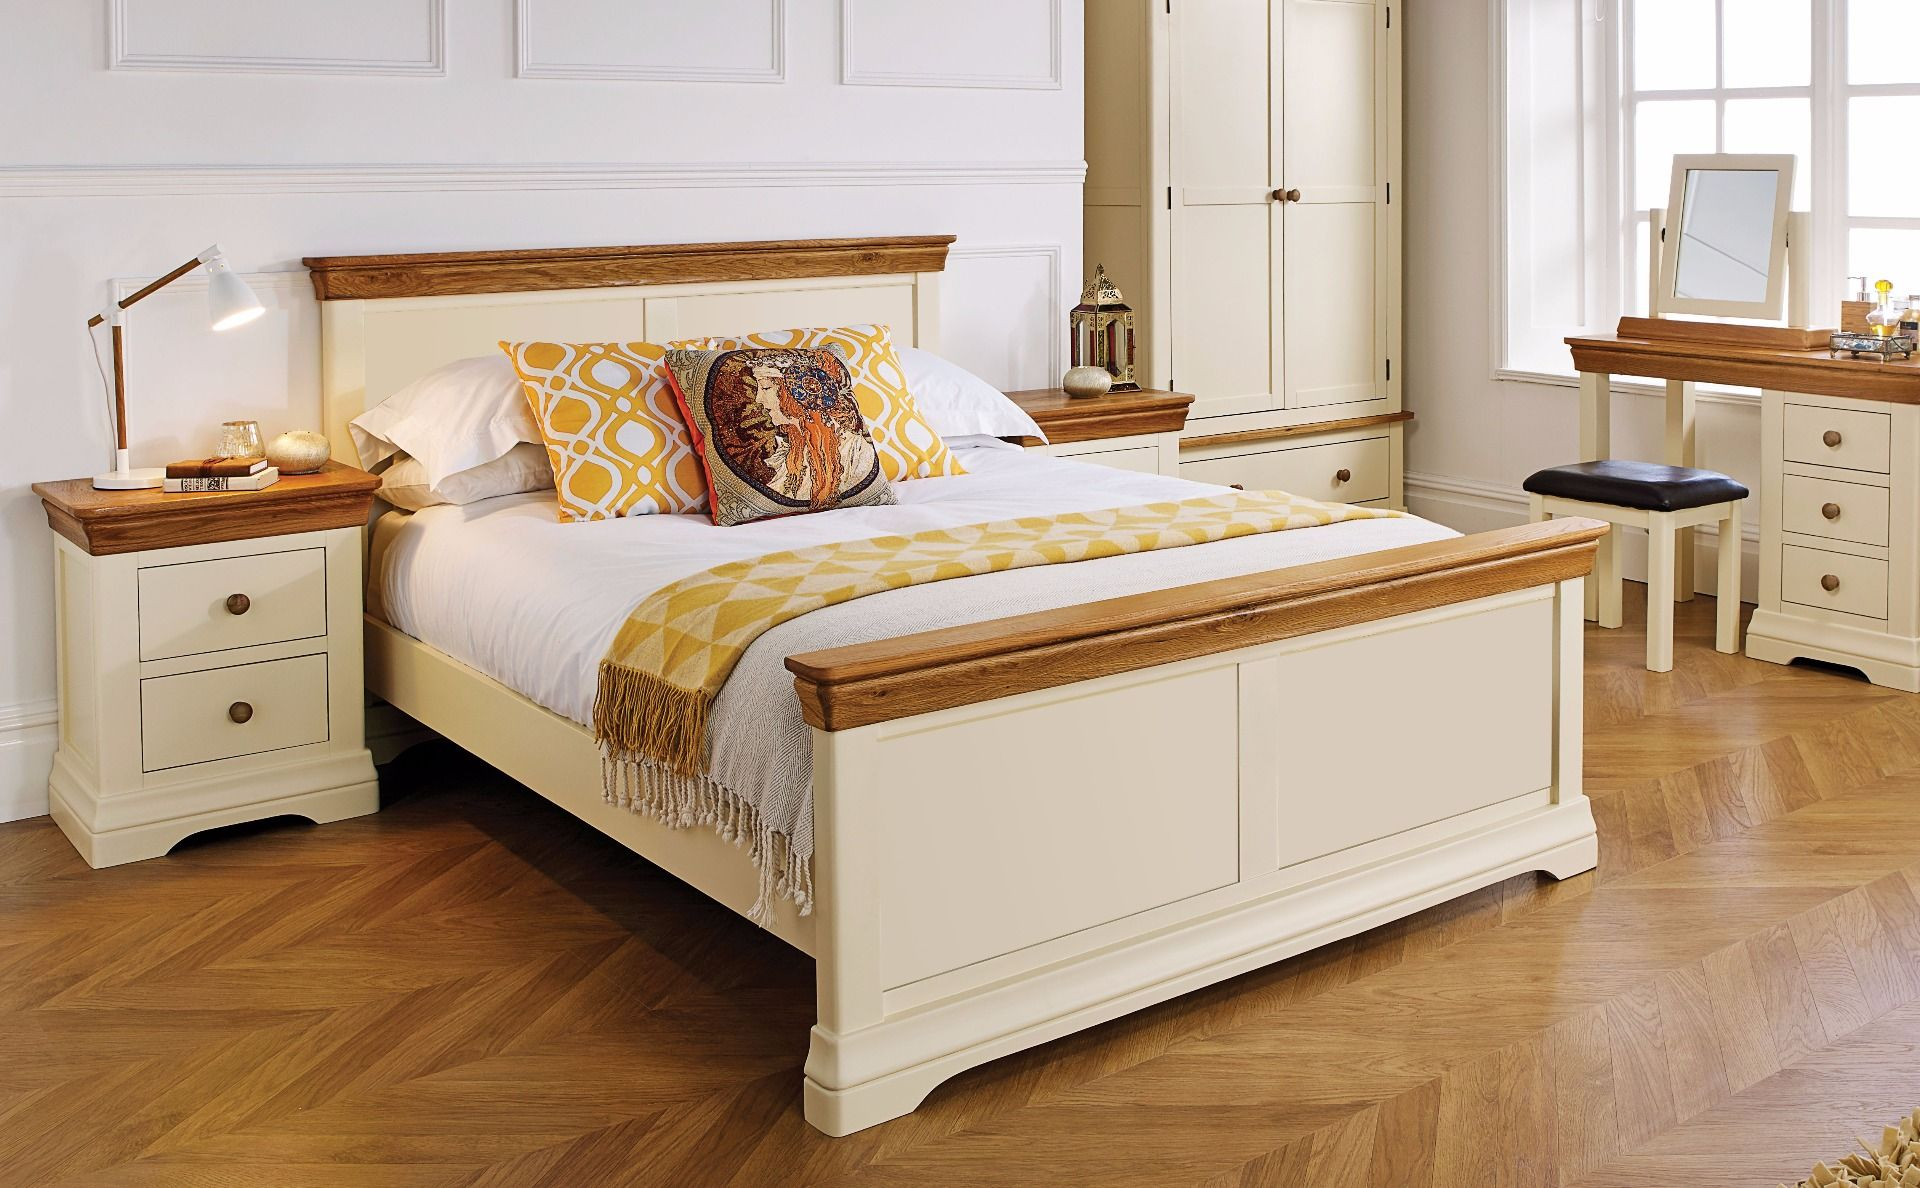 4ft 6 Bed Farmhouse Country Oak Cream Painted 4ft 6 Inches Double Bed